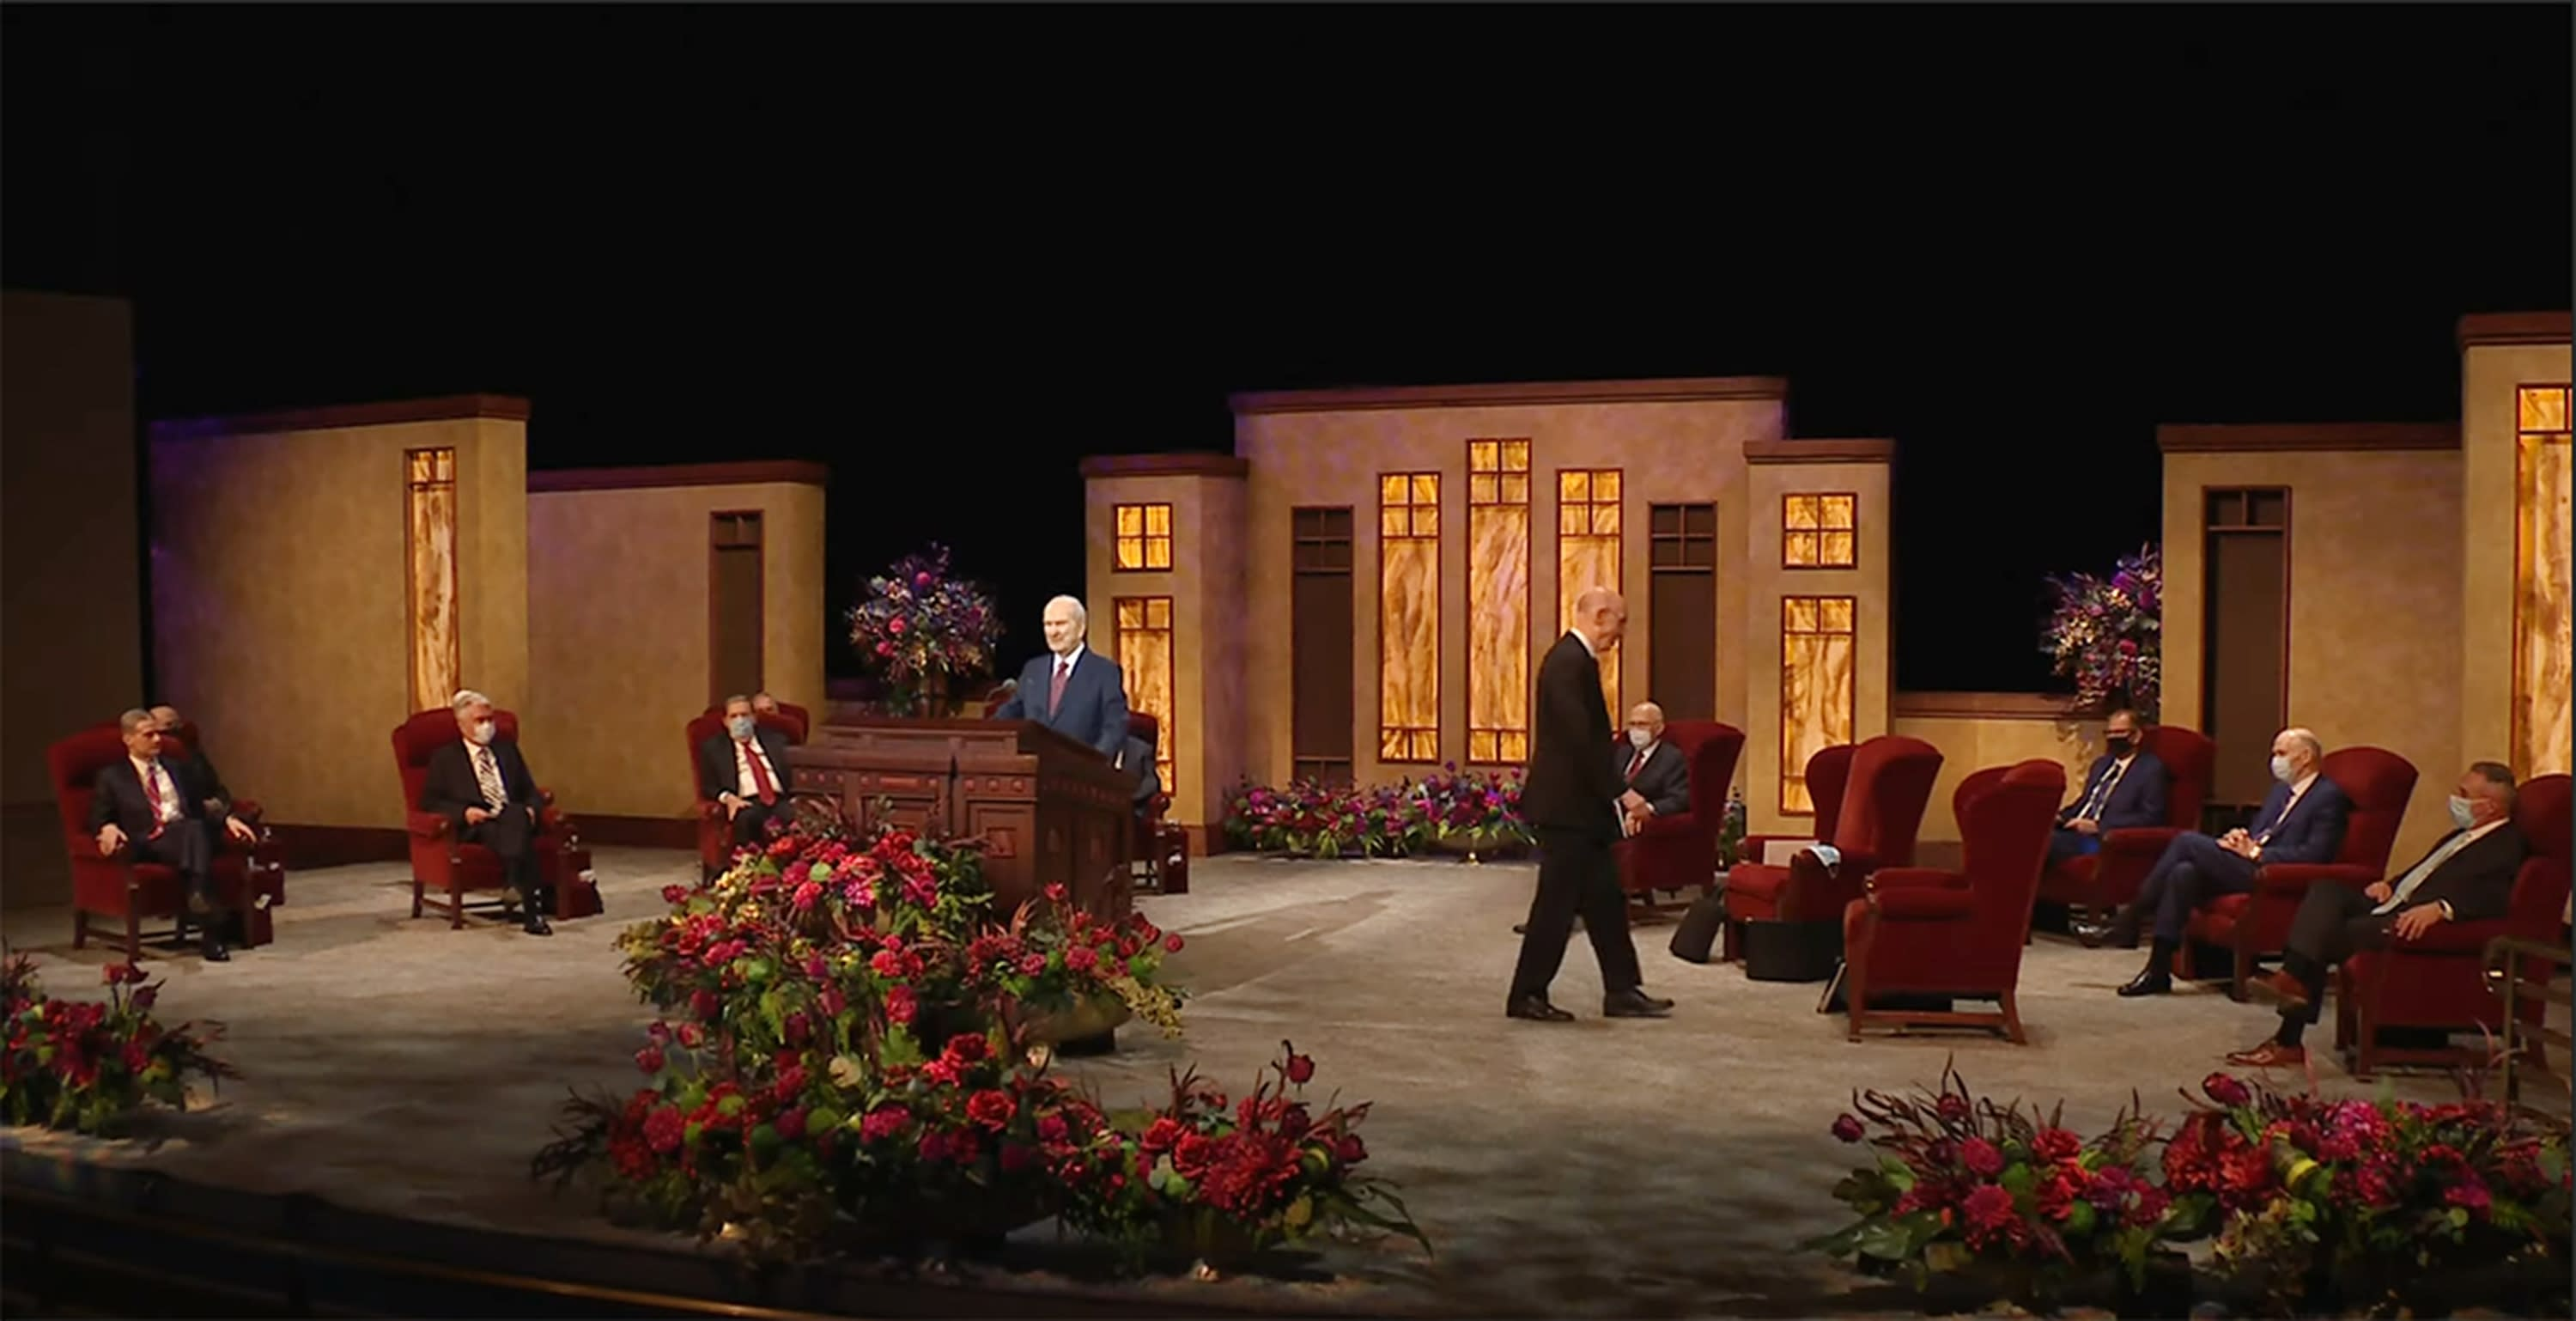 This Saturday, Oct. 3, 2020, video image streamed by The Salt Lake Temple of The Church of Jesus Christ of Latter-day Saints, shows church President Russell M. Nelson, at podium, with top leaders during the opening of the 190th Semiannual General Conference at the Conference Center Theater on Temple Square in Salt Lake City. The twice-annual conference kicked off Saturday without anyone attending in person and top leaders sitting some 6-feet apart inside an empty room as the faith takes precautions to avoid the spread of the coronavirus. (The Church of Jesus Christ of Latter-day Saints via AP)